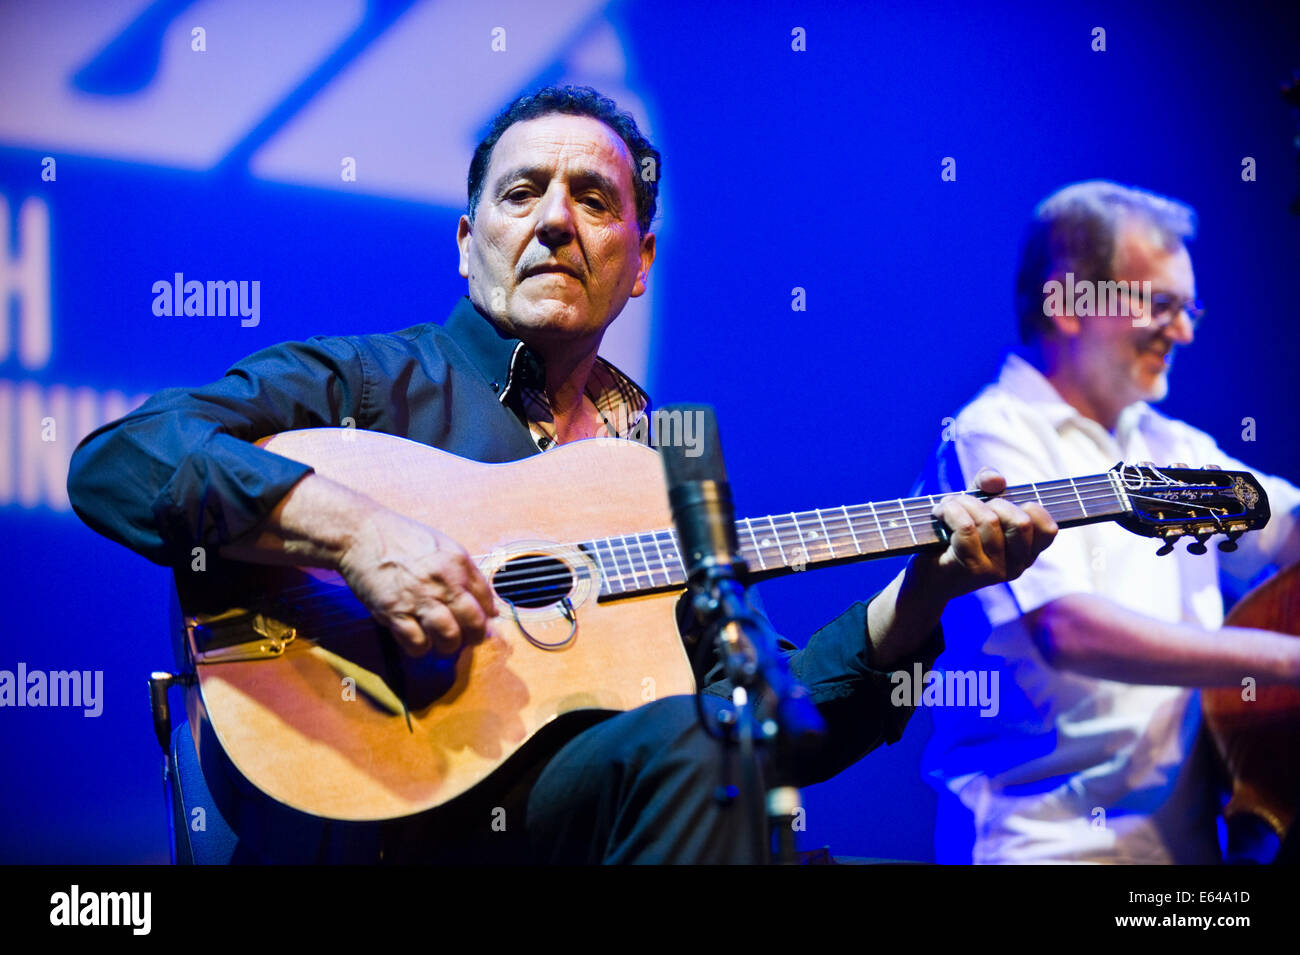 Live music gypsy jazz with Fapy Laferttin Quartet on stage at Brecon Jazz Festival 2014 - Stock Image